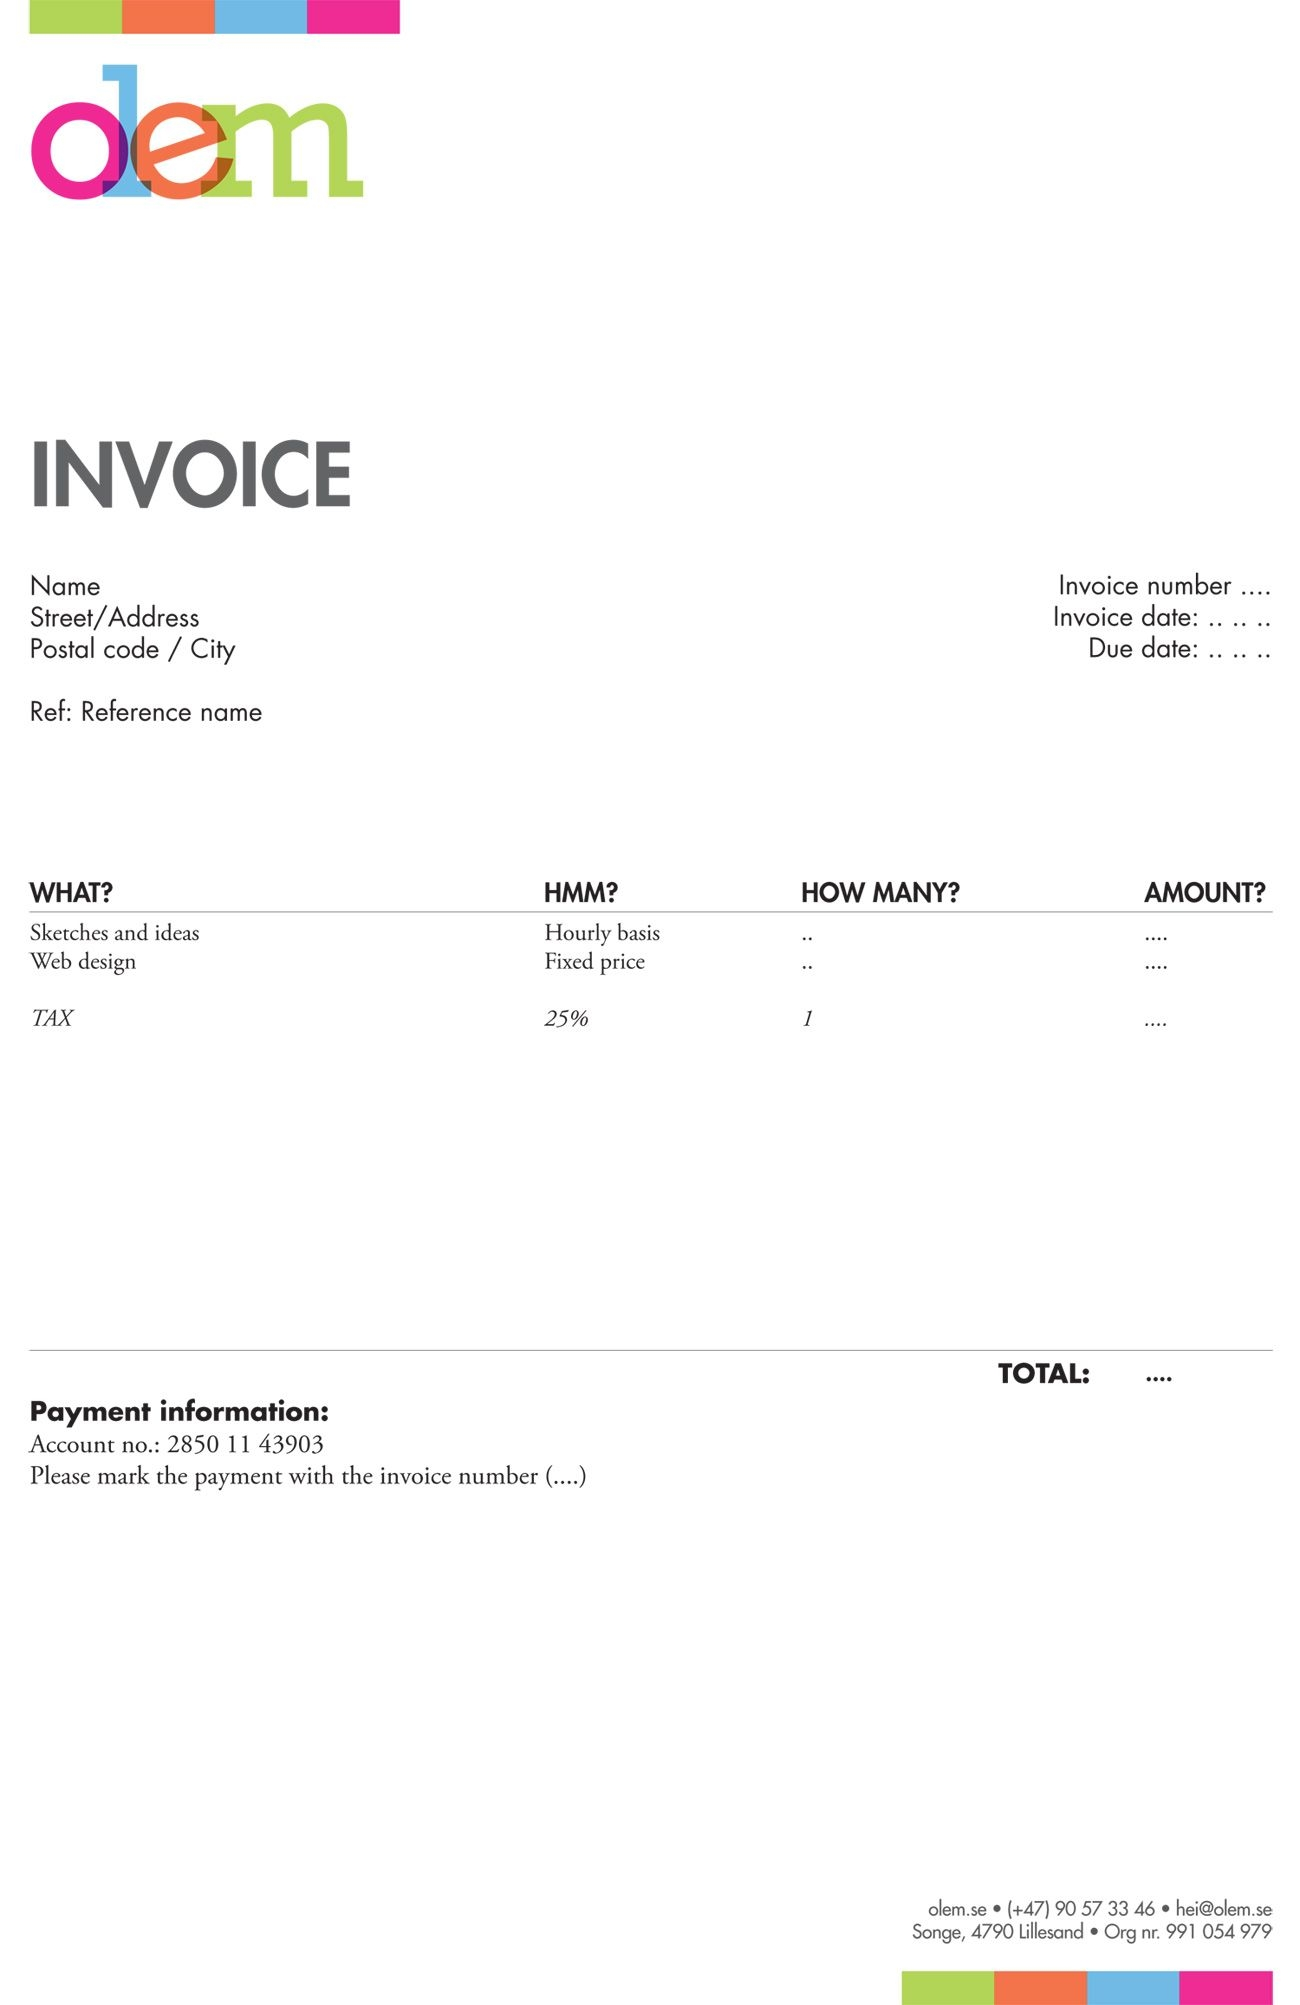 invoice like a pro design examples and best practices invoice template graphic design freelance